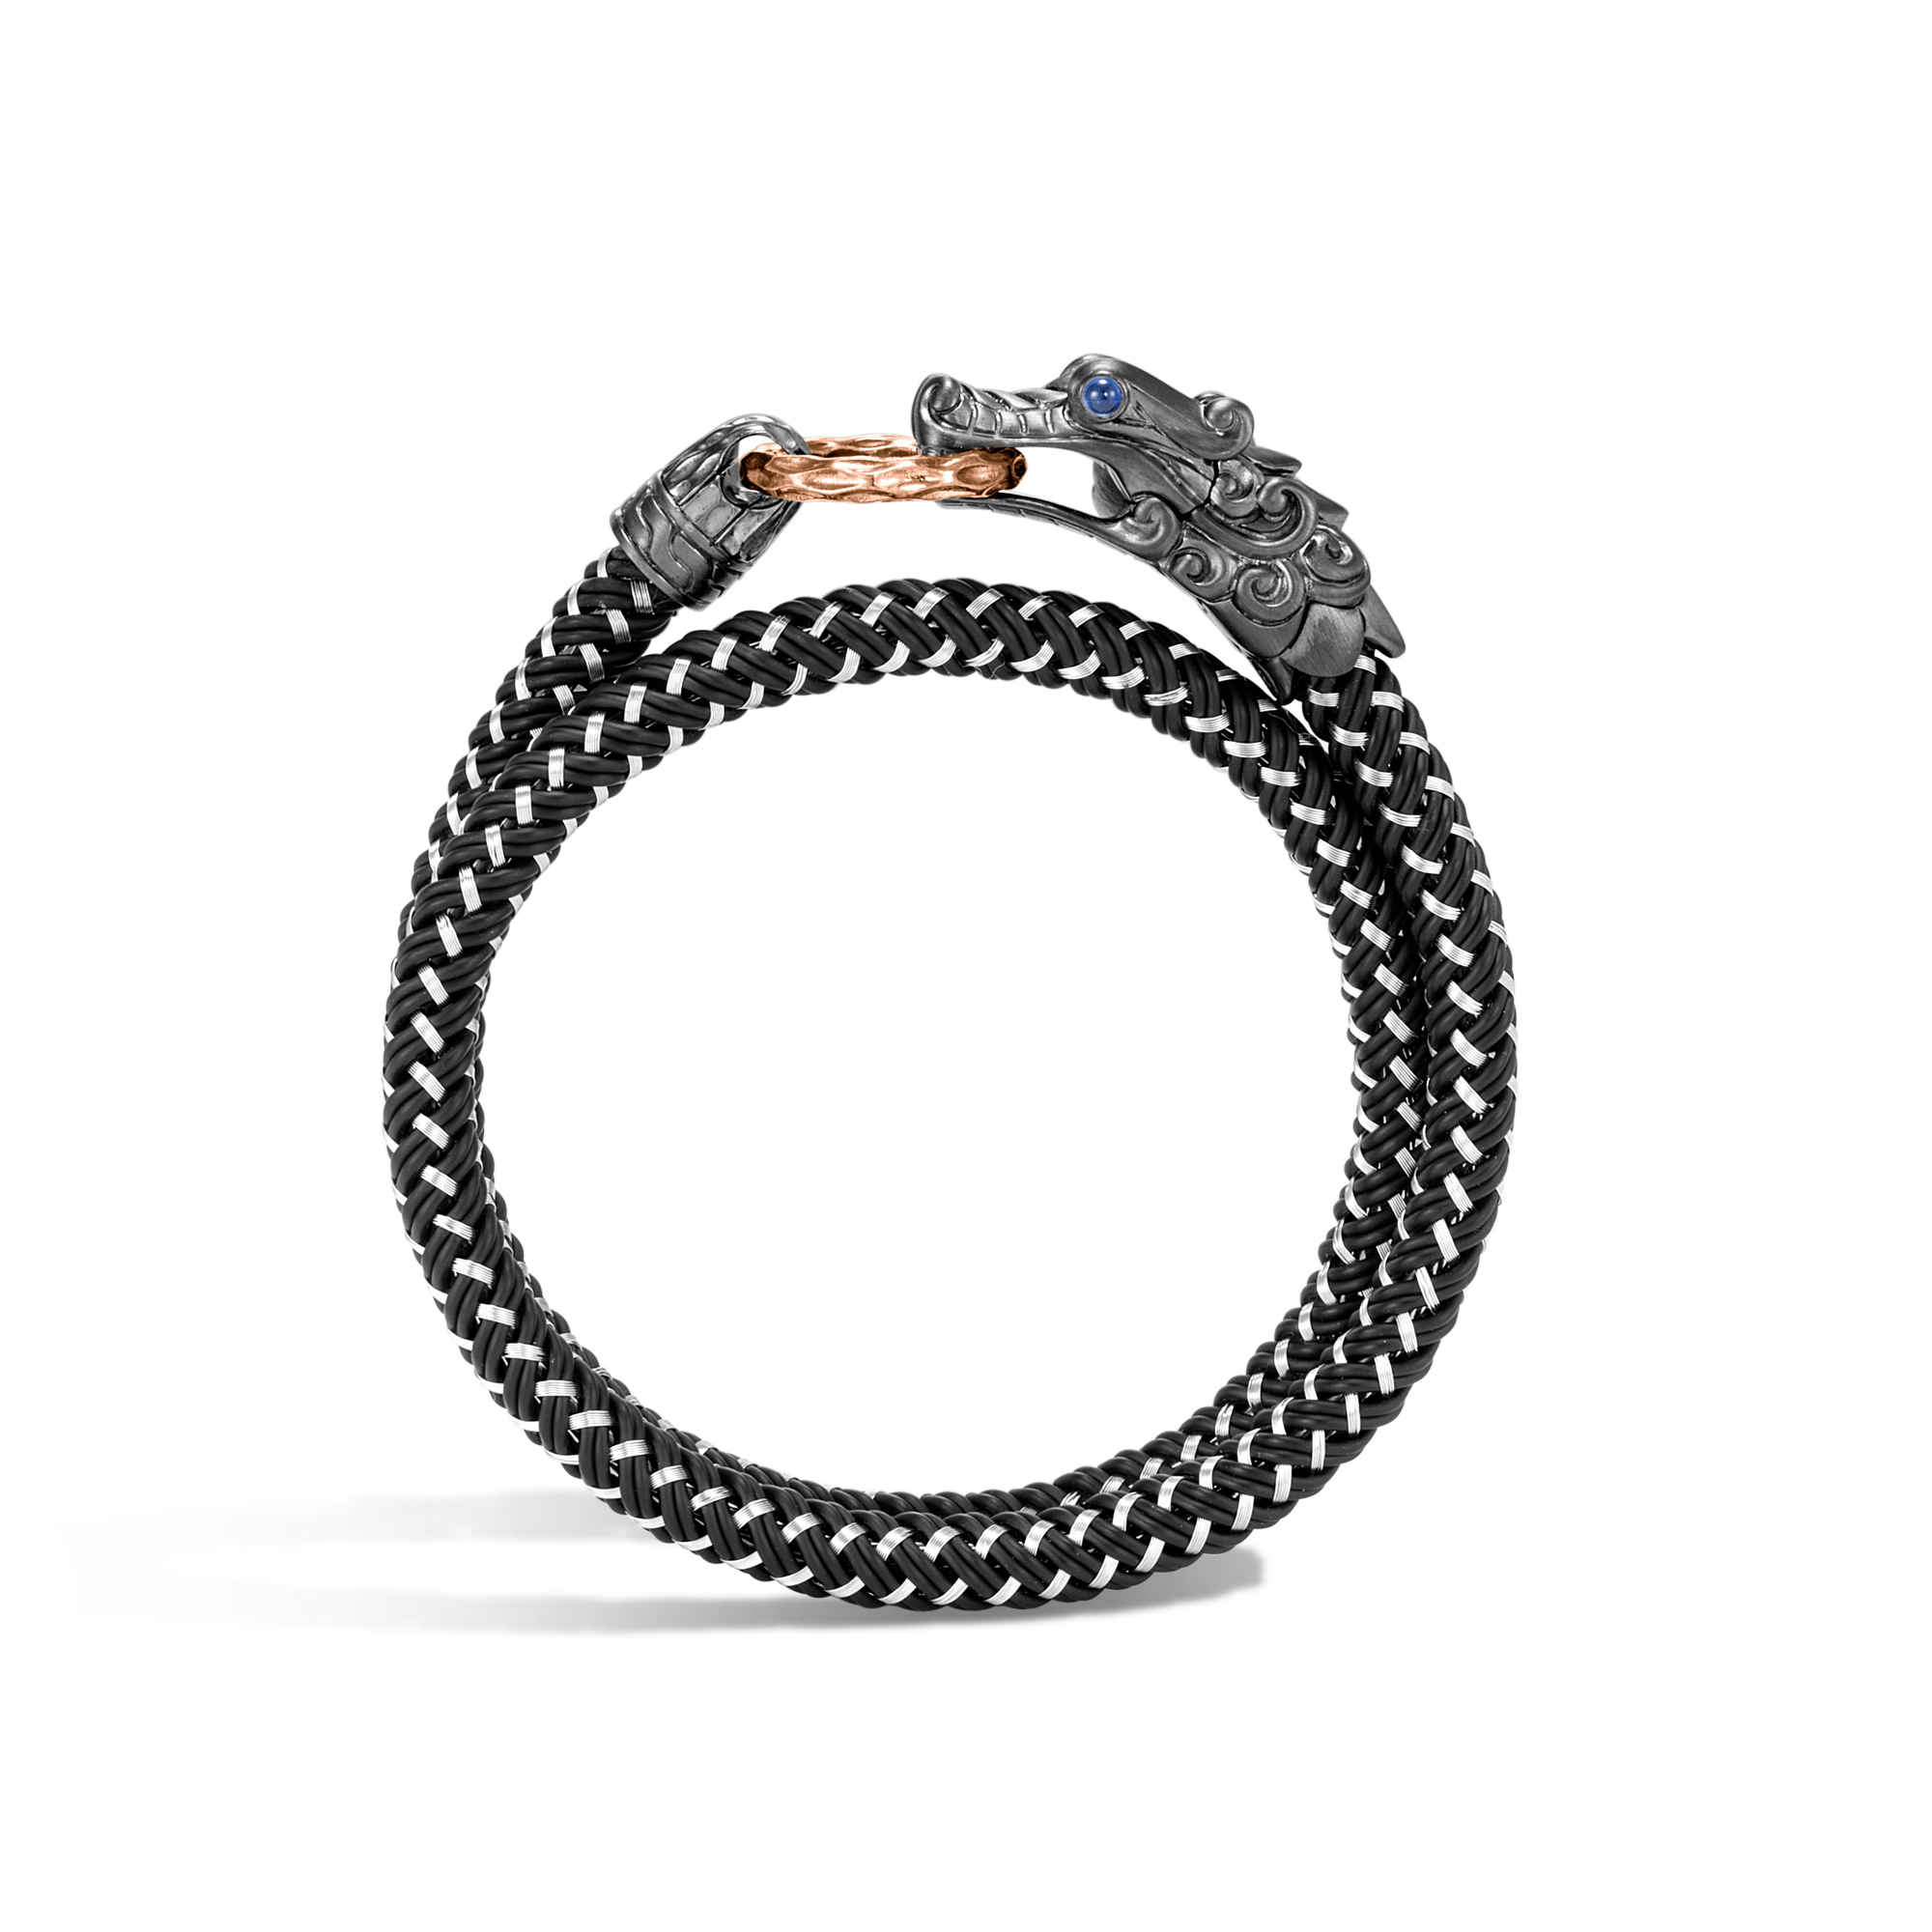 Legends Naga Wrap Bracelet In Blackened Silver and Bronze, , large